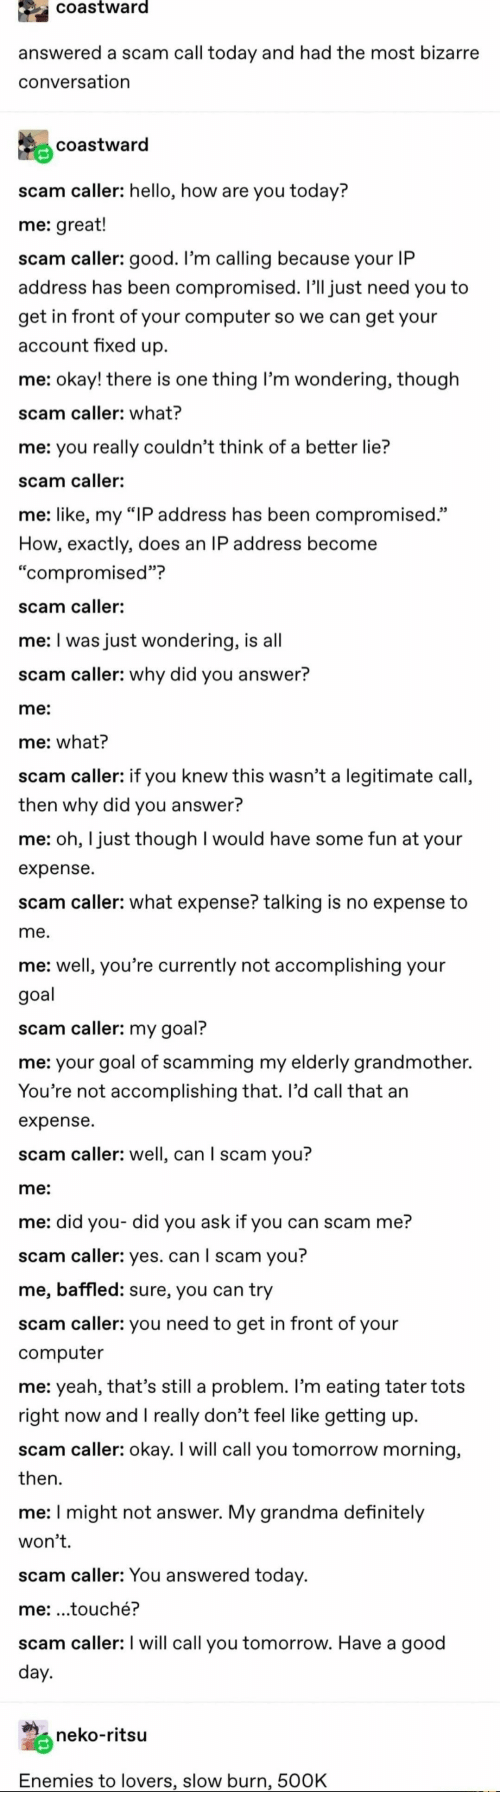 "Bizarre: coastward  answered a scam call today and had the most bizarre  conversation  coastward  scam caller: hello, how are you today?  me: great!  scam caller: good. I'm calling because your IP  address has been compromised. I'll just need you to  get in front of your computer so we can get your  account fixed up  me: okay! there is one thing I'm wondering, though  scam caller: what?  me: you really couldn't think of a better lie?  scam caller:  me: like, my ""IP address has been compromised.""  How, exactly, does an IP address become  ""compromised""?  scam caller:  me: I was just wondering, is all  scam caller: why did you answer?  me:  me: what?  scam caller: if you knew this wasn't a legitimate call,  then why did you answer?  me: oh, I just though I would have some fun at your  expense  scam caller: what expense? talking is no expense to  me.  me: well, you're currently not accomplishing your  goal  scam caller: my goal?  me: your goal of scamming my elderly grandmother.  You're not accomplishing that. Il'd call that an  expense  scam caller: well, can I scam you?  me:  me: did you- did you ask if you can scam me?  scam caller: yes. can I scam you?  me, baffled: sure, you can try  scam caller: you need to get in front of your  computer  me: yeah, that's still a problem. I'm eating tater tots  right now andI really don't feel like getting up  scam caller: okay. I will call you tomorrow morning,  then  me: I might not answer. My grandma definitely  won't.  scam caller: You answered today.  me: .touché?  scam caller: I will call you tomorrow. Have a good  day.  neko-ritsu  Enemies to lovers, slow burn, 500K"